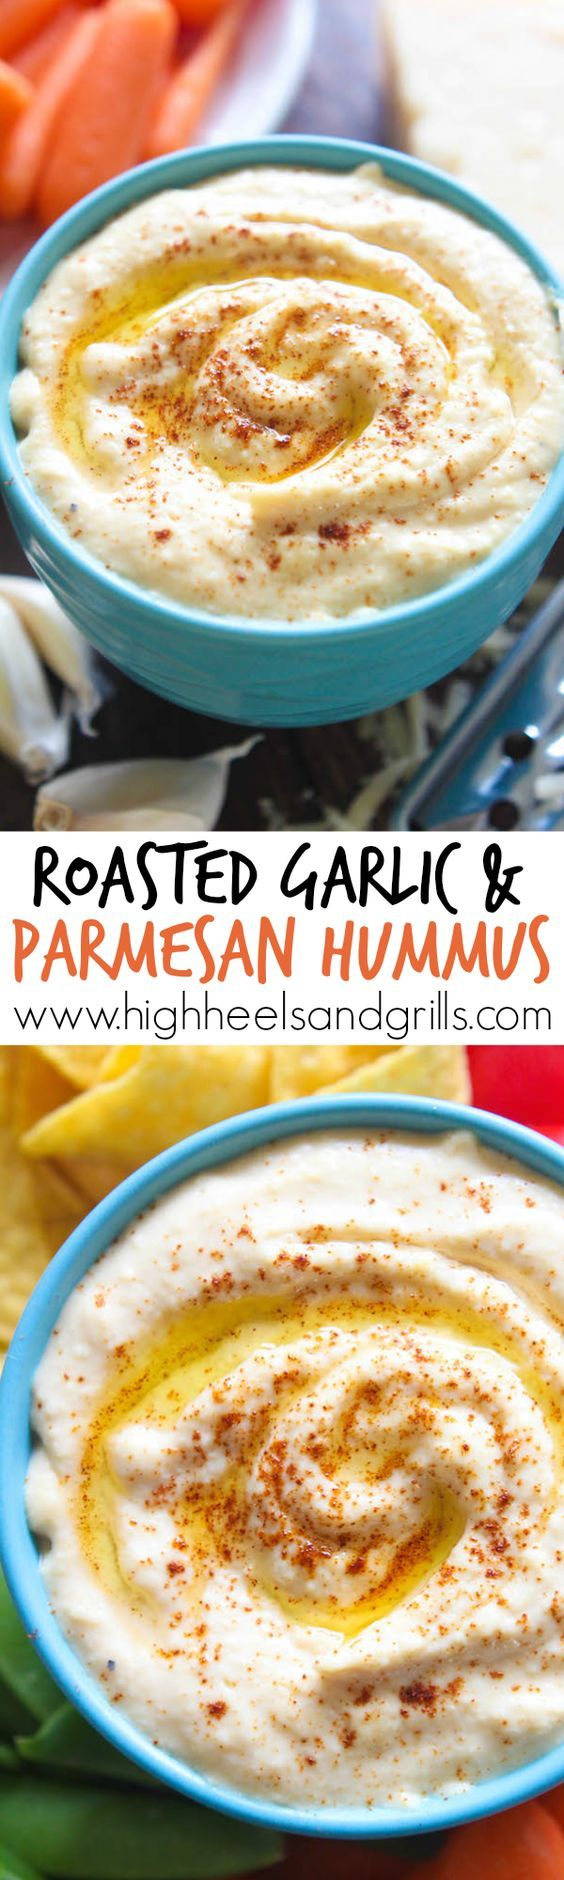 Roasted Garlic Parmesan Hummus - This hummus is great for a party appetizer or a side dish at dinner. Dip vegetables, tortilla chips, pita crackers, or pretzels for the perfect snack!